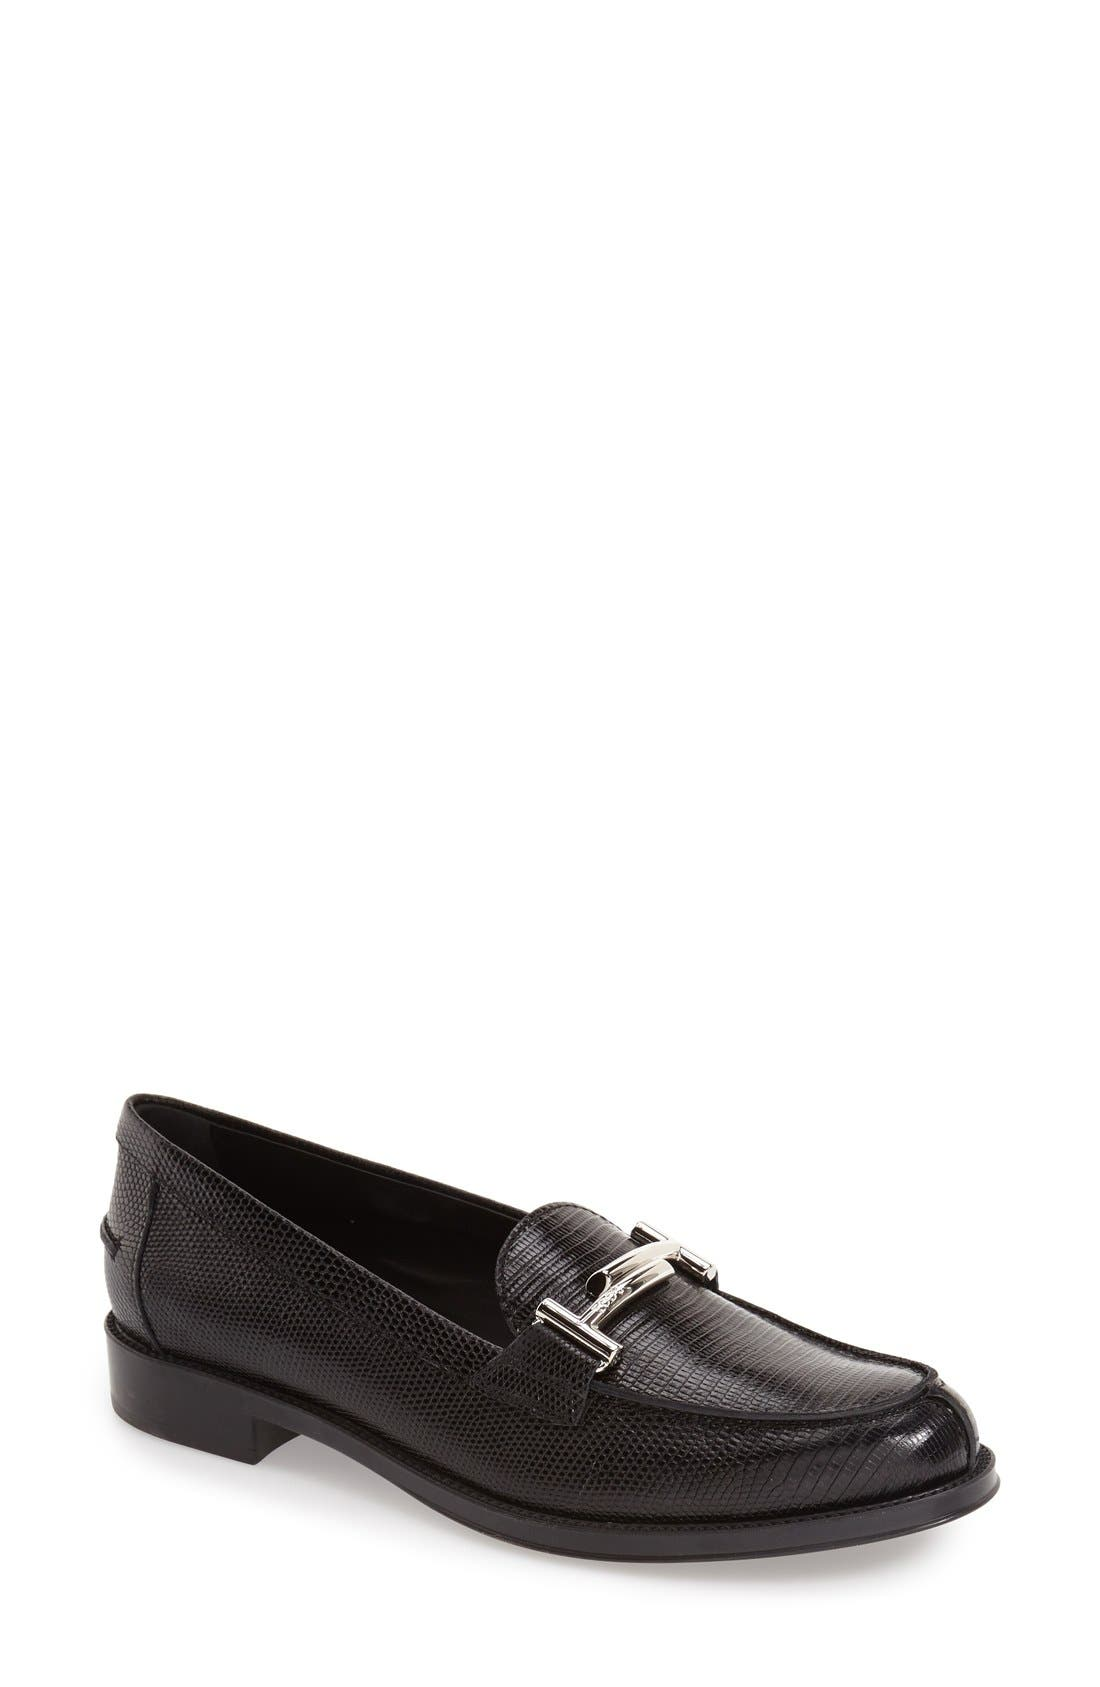 Alternate Image 1 Selected - Tod's 'Double T' Loafer (Women)